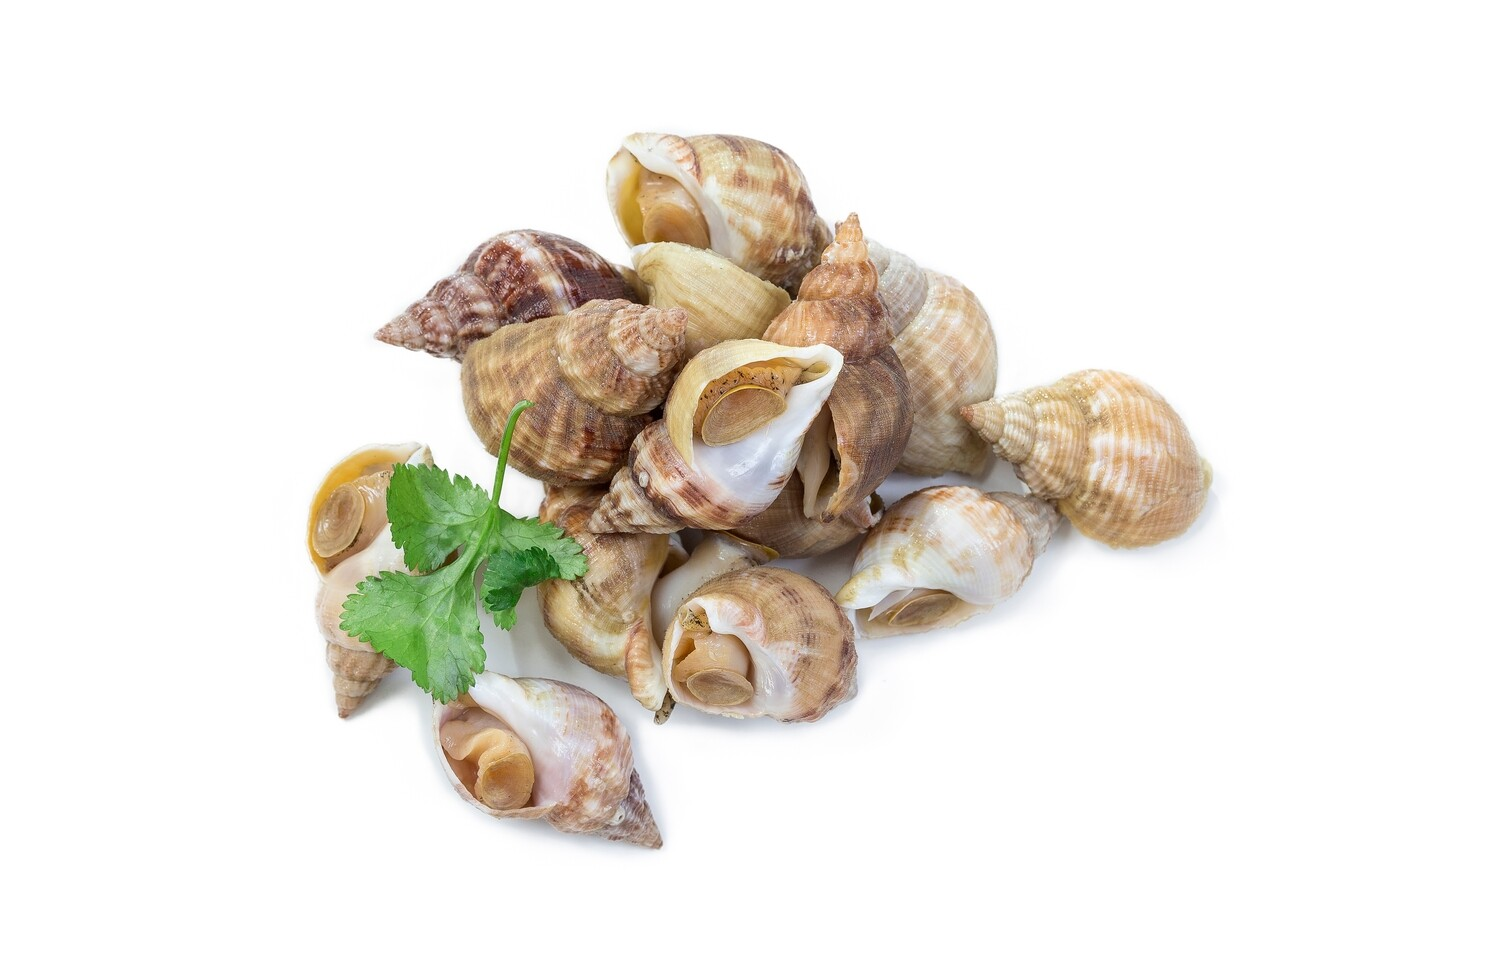 Pan Royal Ireland whelk